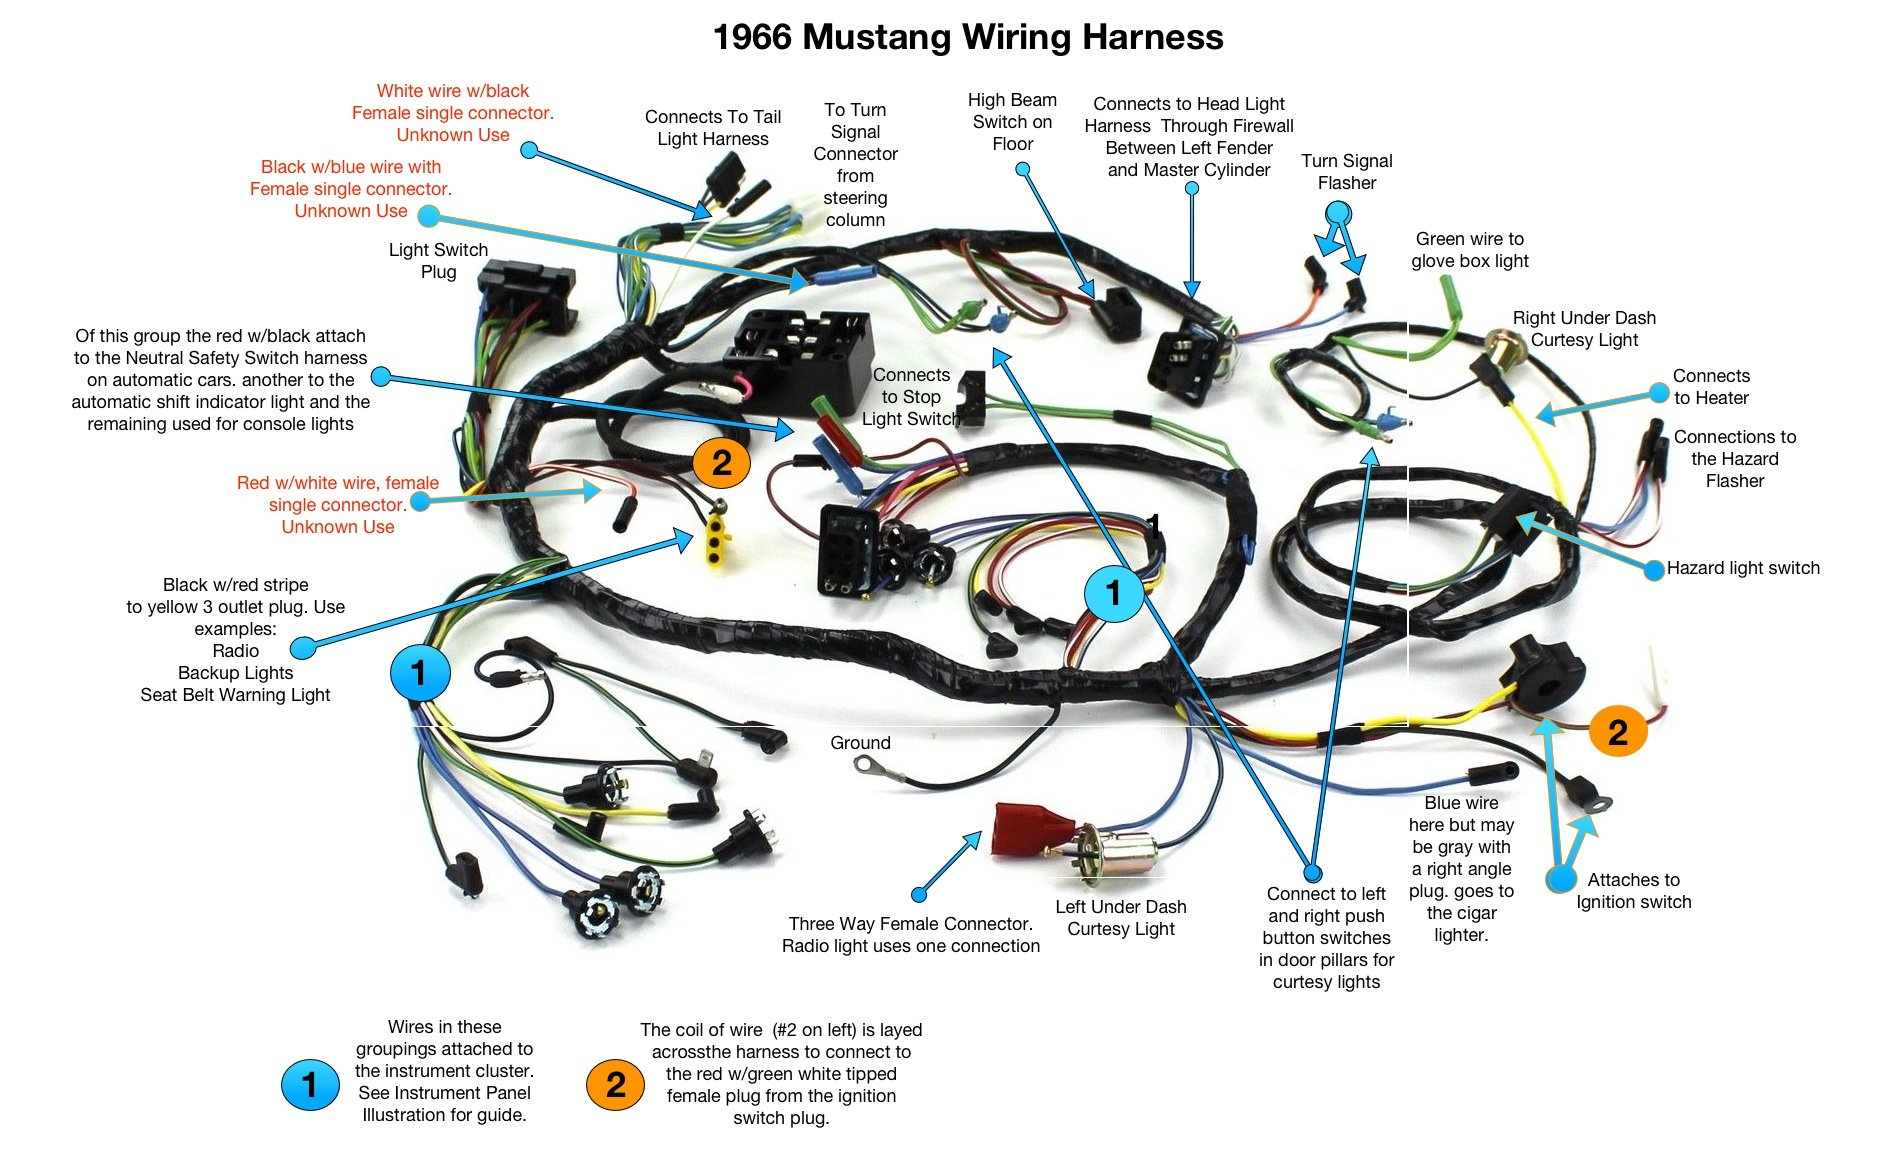 D Wiring Harness Diagram Mustang Wiring Harness on 65 Mustang Ignition Switch Wiring Diagram